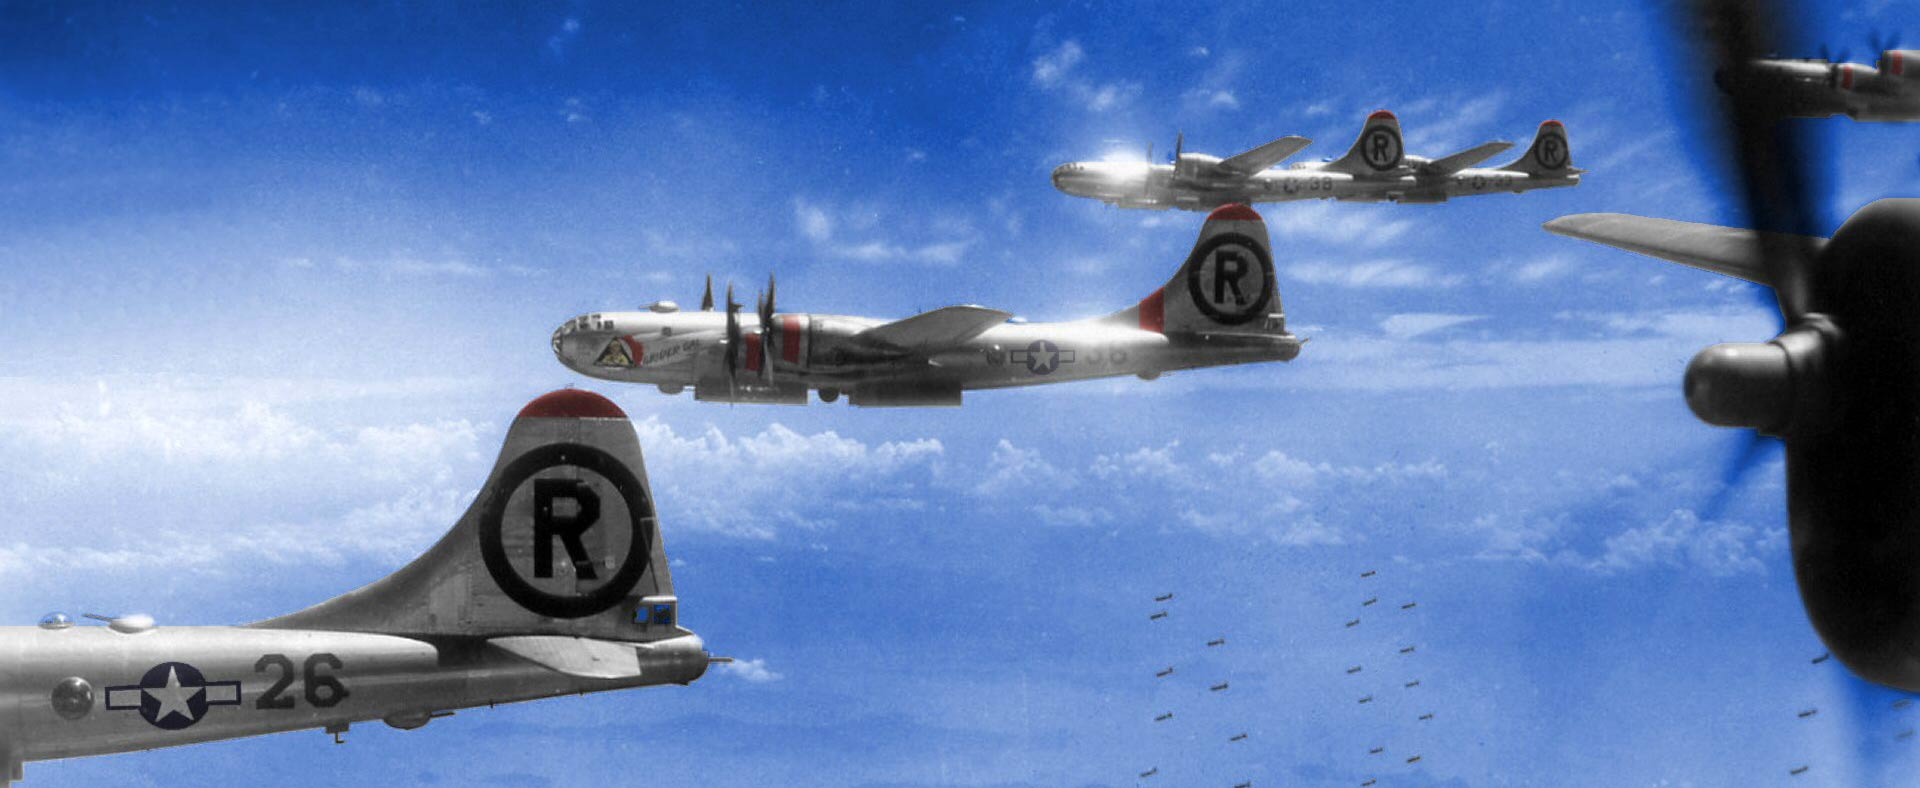 6th Bomb Group B-29 planes, Pacific War, 1945. Photo: ©Percy Tucker. All Rights Reserved